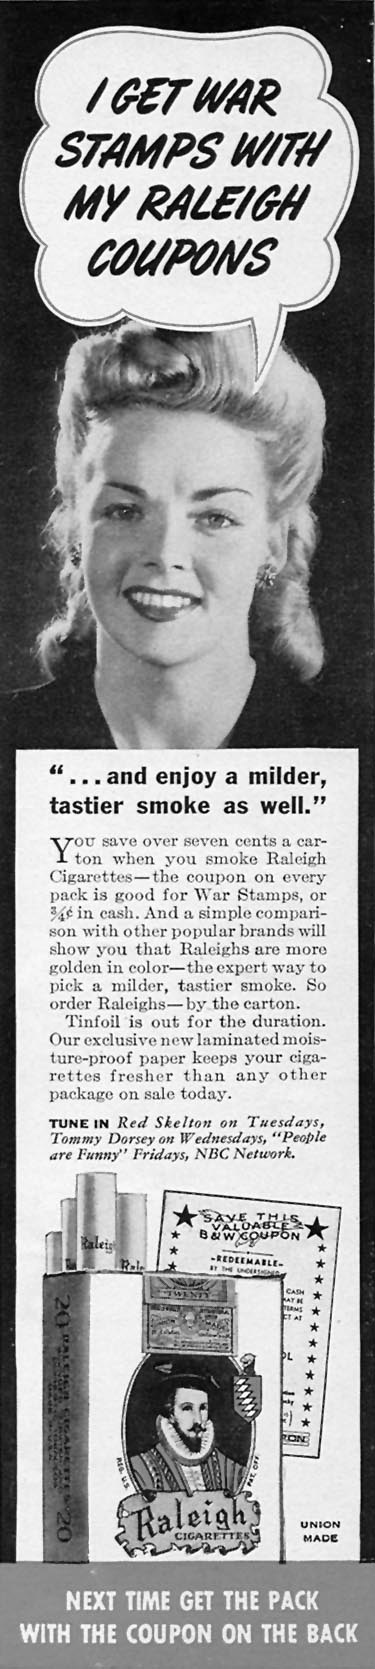 RALEIGH CIGARETTES WOMAN'S DAY 06/01/1943 p. 15